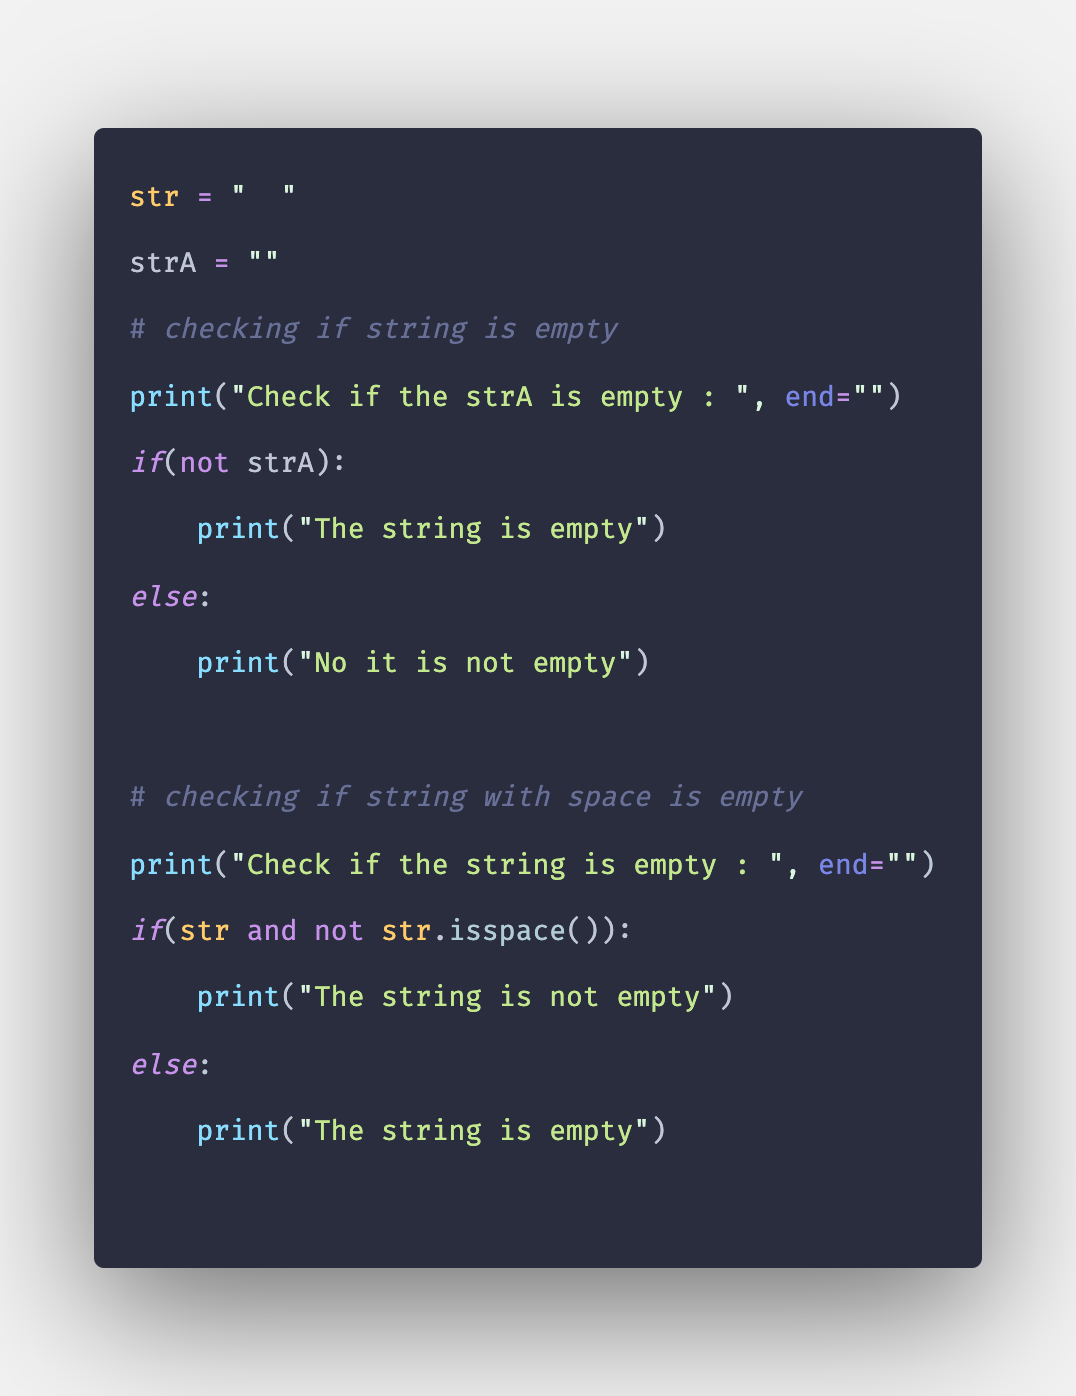 How to Check If String is Empty or Not in Python